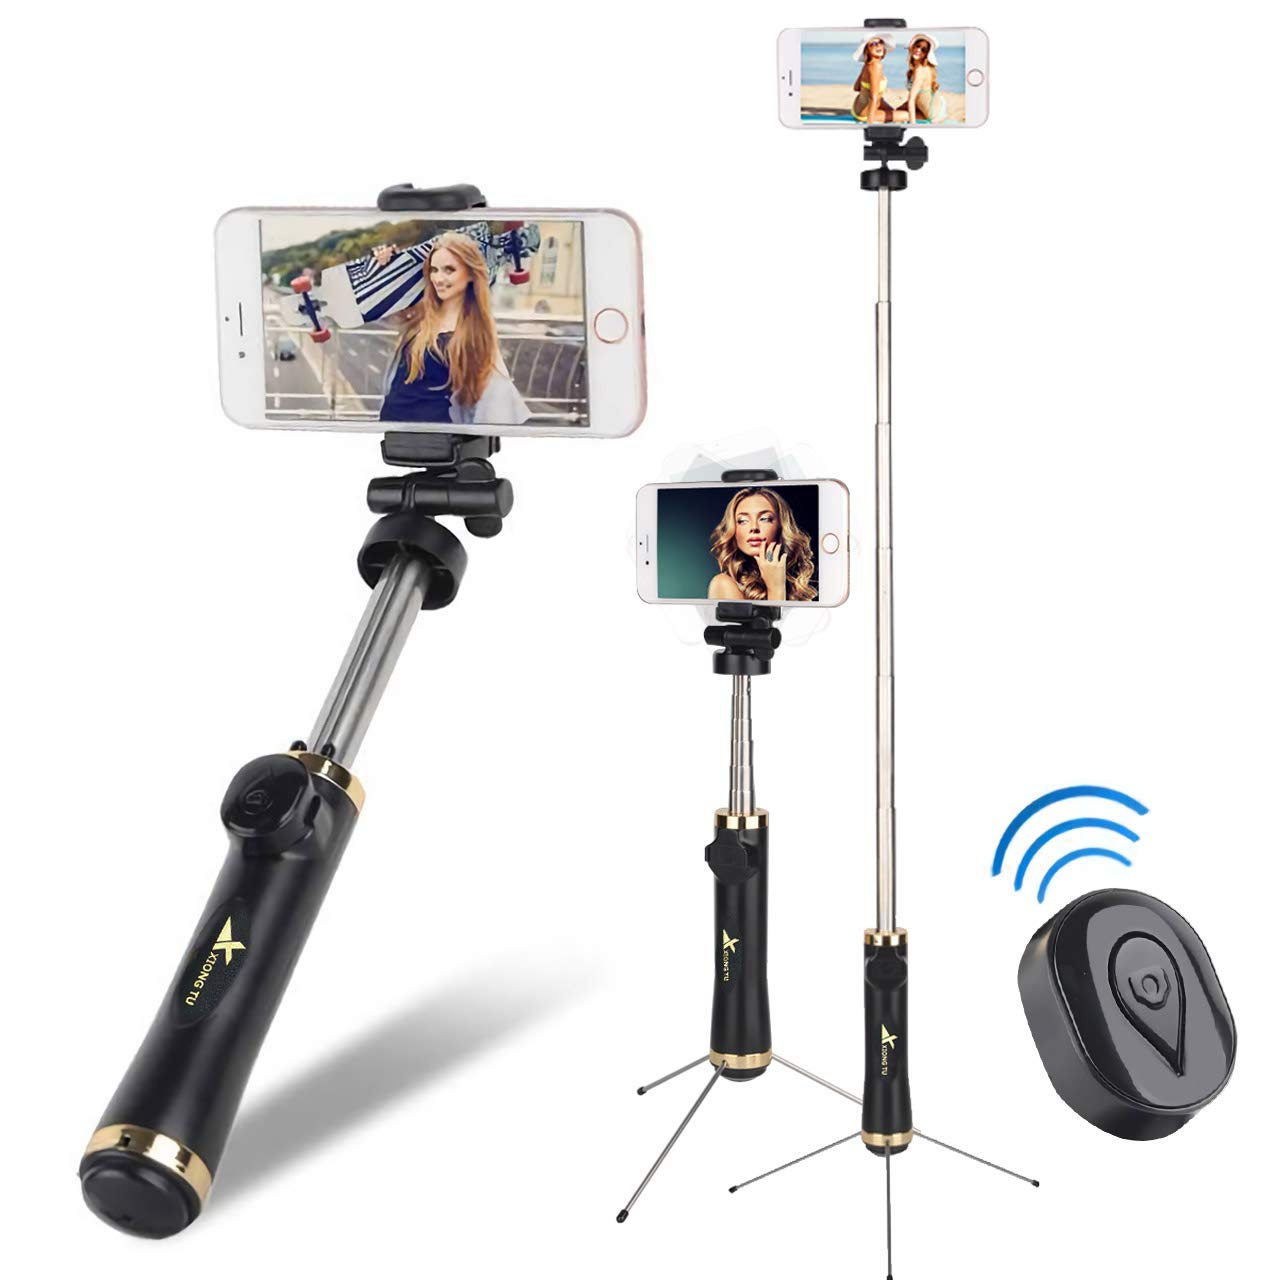 Extendable Selfie Stick Tripod with Detachable Wireless Remote and Tripod Stand for iPhone X/8/8 Plus/7/7 Plus, Galaxy S9/S9 Plus/S8/S8 Plus/Note8, Huawei, More Evanee